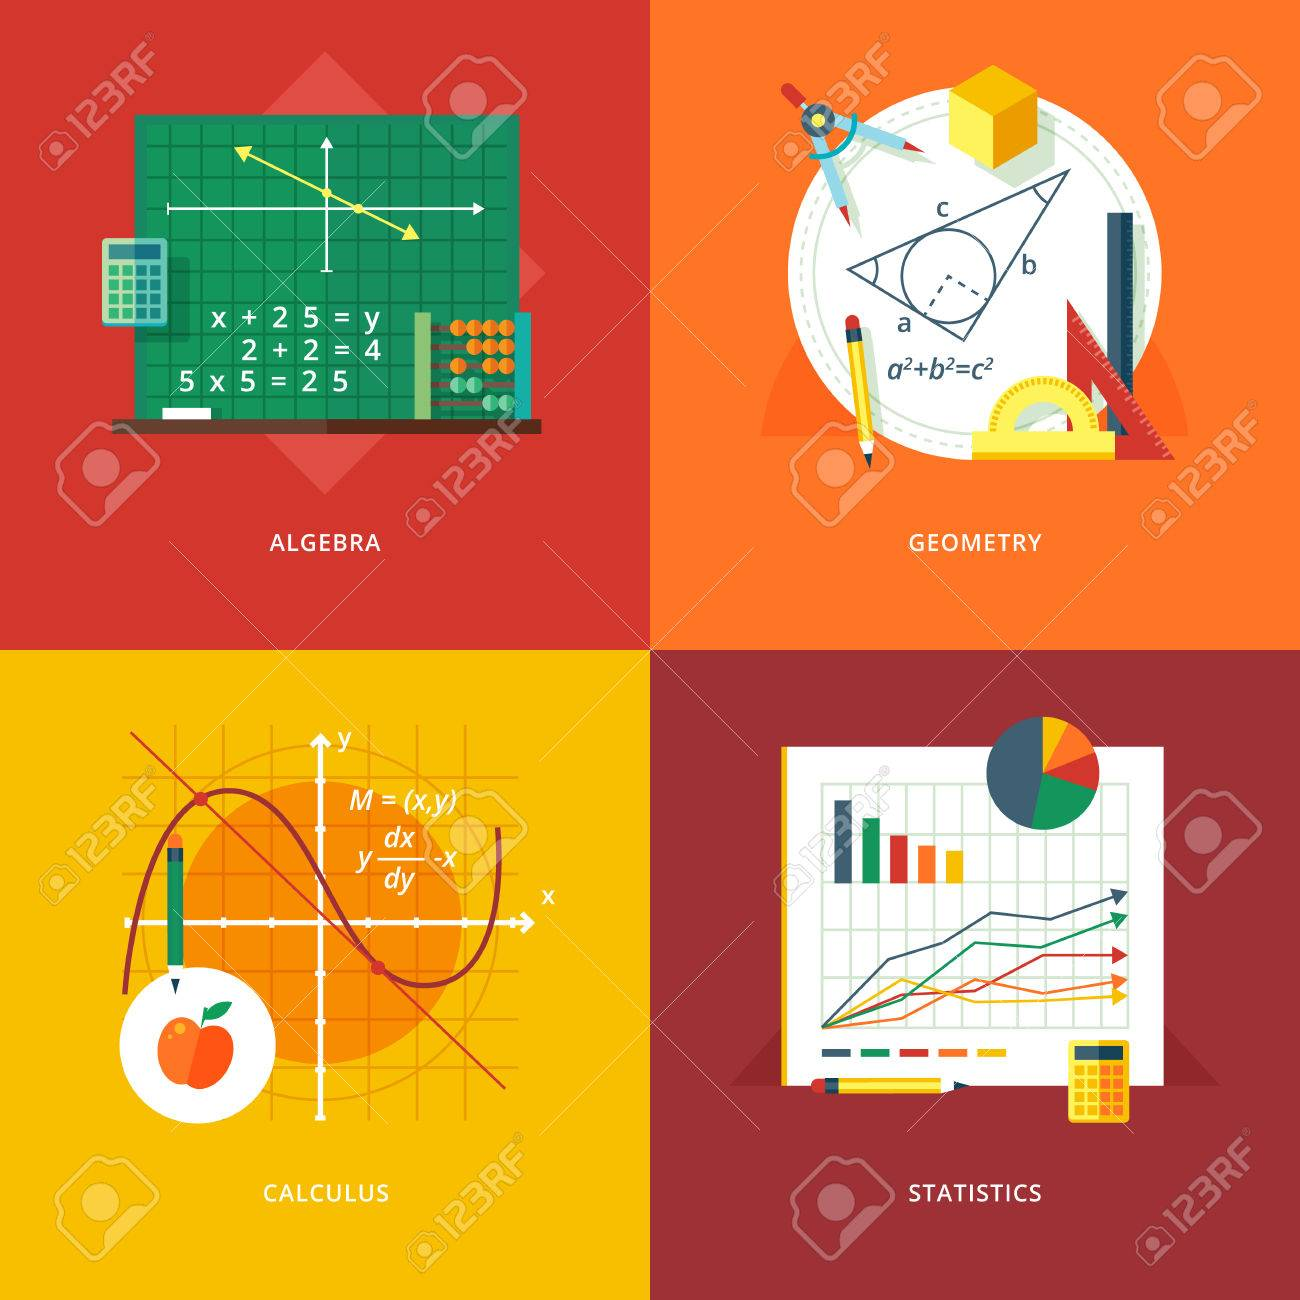 Set of flat design illustration concepts for algebra, geometry, calculus, statistics.  Education and knowledge ideas. Mathematic science.  Concepts for web banner and promotional material. Stock Vector - 52588686